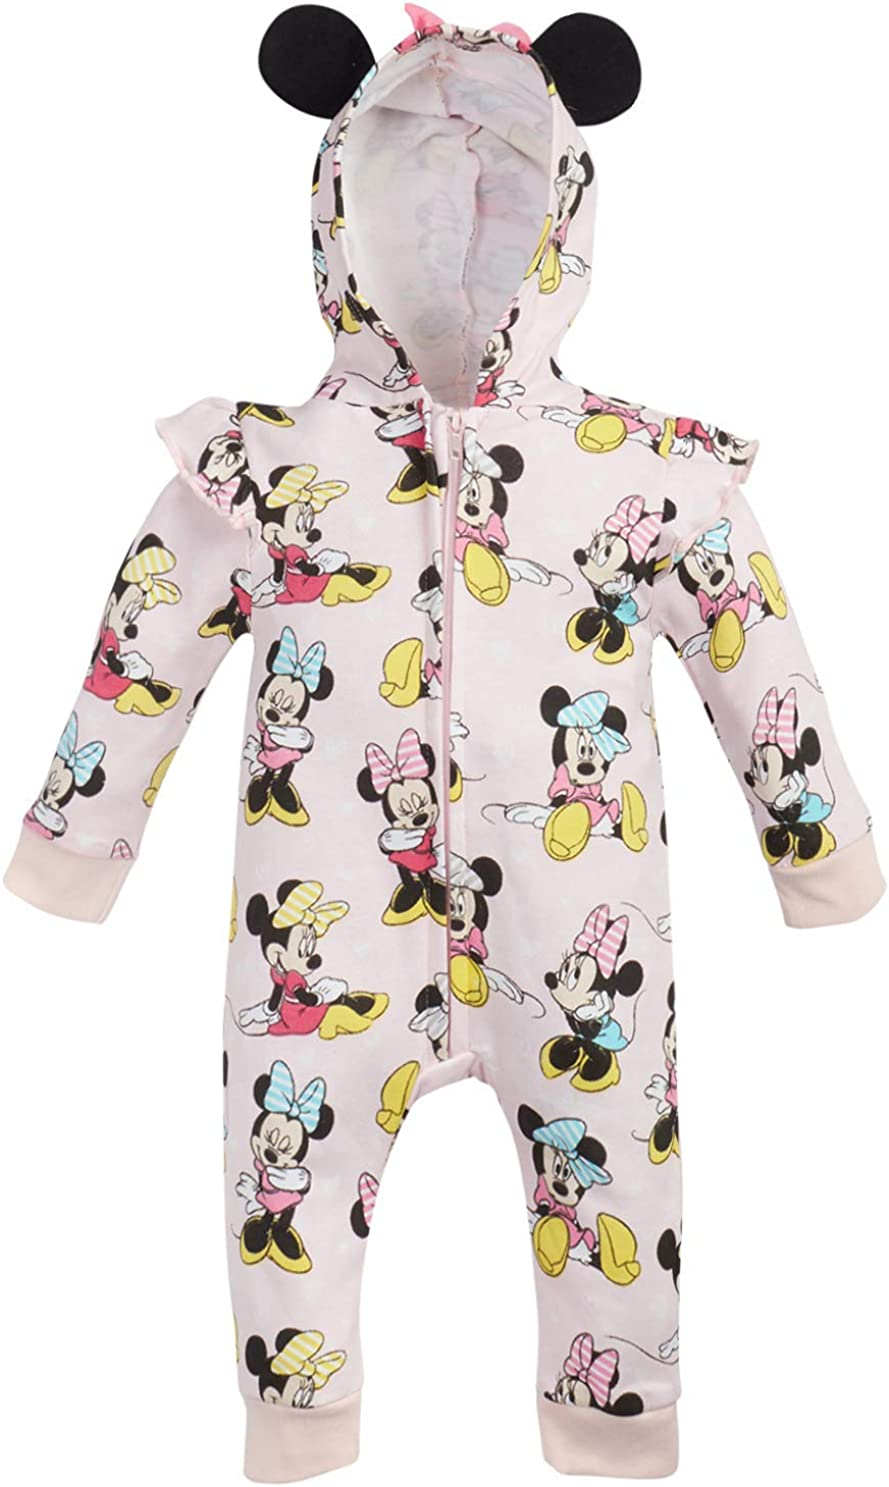 Disney Baby Girls Minnie Mouse One Piece Hooded Footless Romper Jumpsuit Pink Minnie Size 0-3 Months